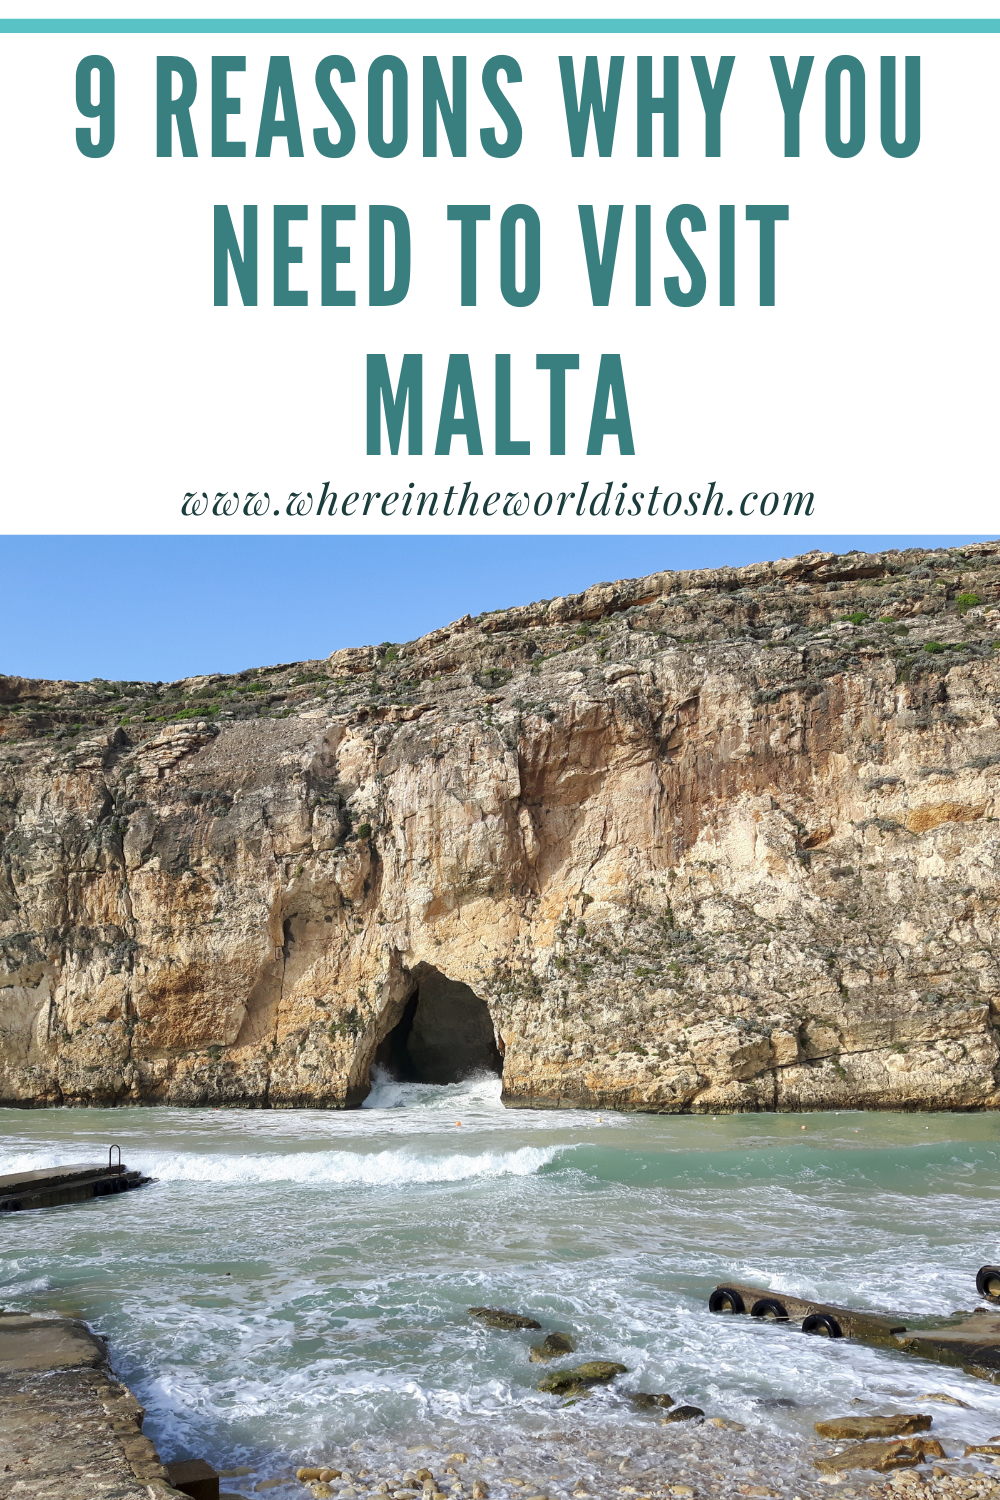 9 Reasons Why You Need To Visit Malta